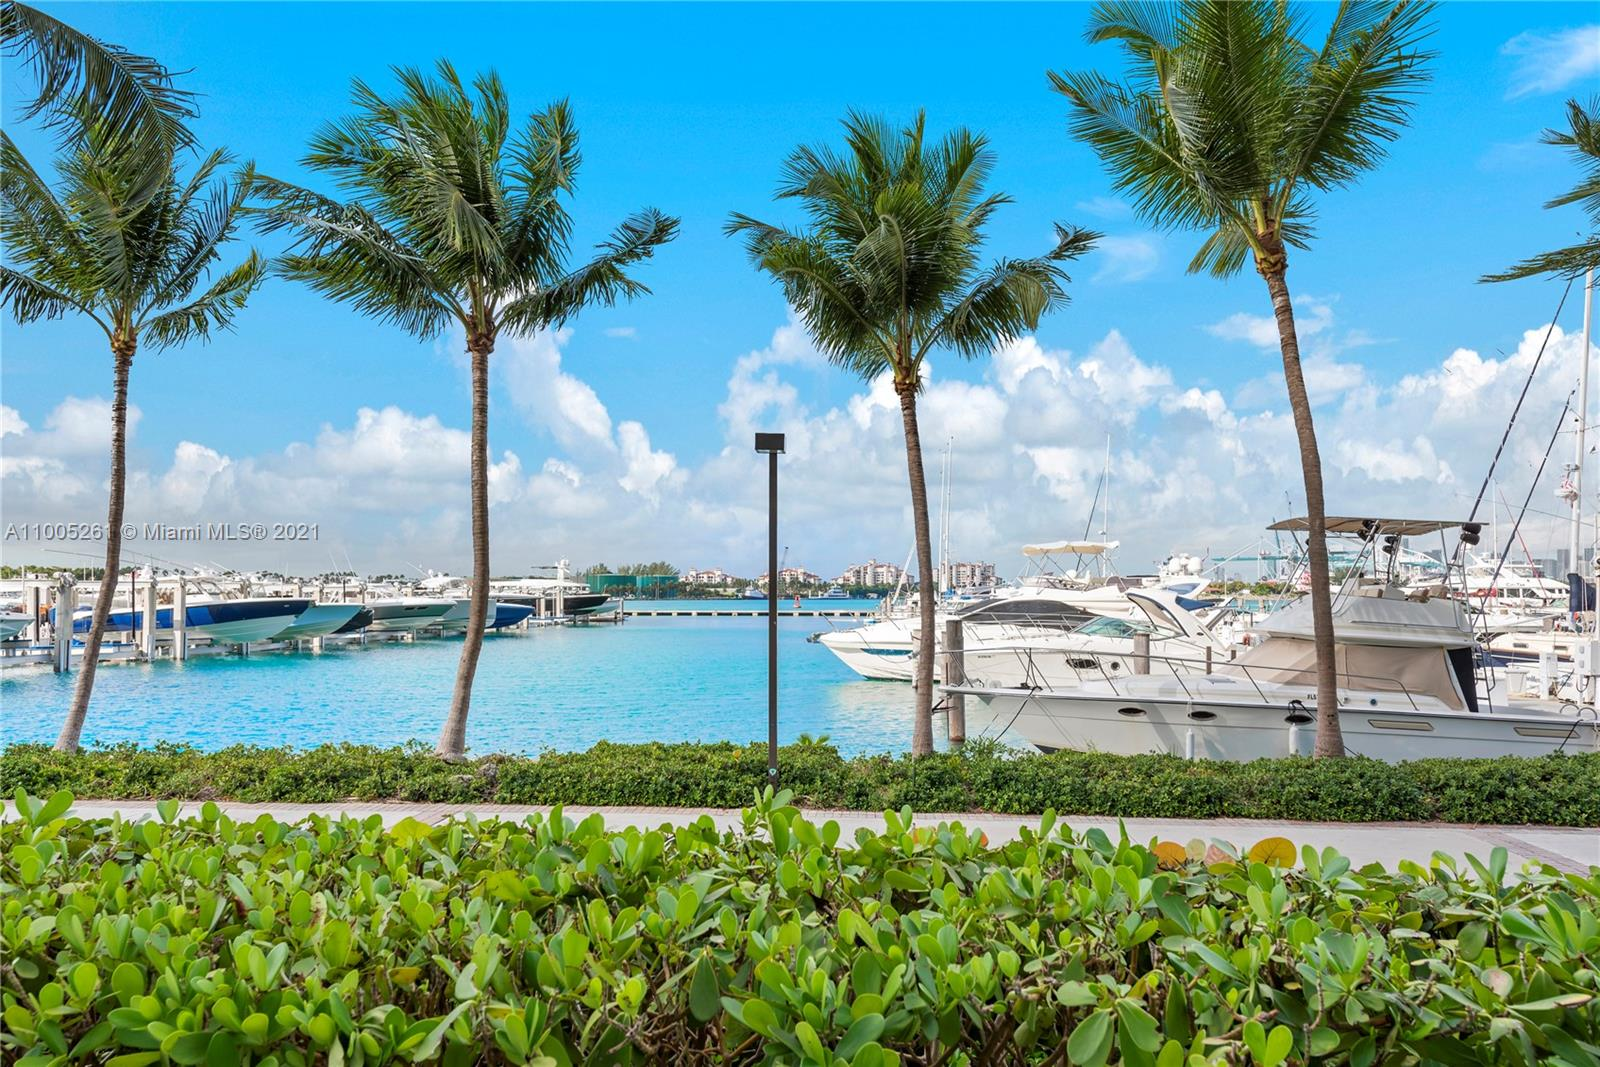 Located in the booming South of Fifth,  this gem is a boater's dream! Dock your boat within steps of your door! With a private gated entrance  X car garage, direct access to Murano amenities, and 700 sf of private terraces, living in this waterfront Flat is like living in a house in Sofi while enjoying all the conveniences of a luxury condo. Amenities include a state of the art Gym & Spa, Sauna, pools, tennis courts, BBQ area, concierge, restaurant. Smart home features include: sound system, motorized black out shades & smart toilets. Enjoy stunning views of the marina, bay, skyline, and sunset. Walk along the scenic boardwalk to reach the beach in minutes! Murano at Portofino truly defines resort style living including white glove concierge services and five start amenities.